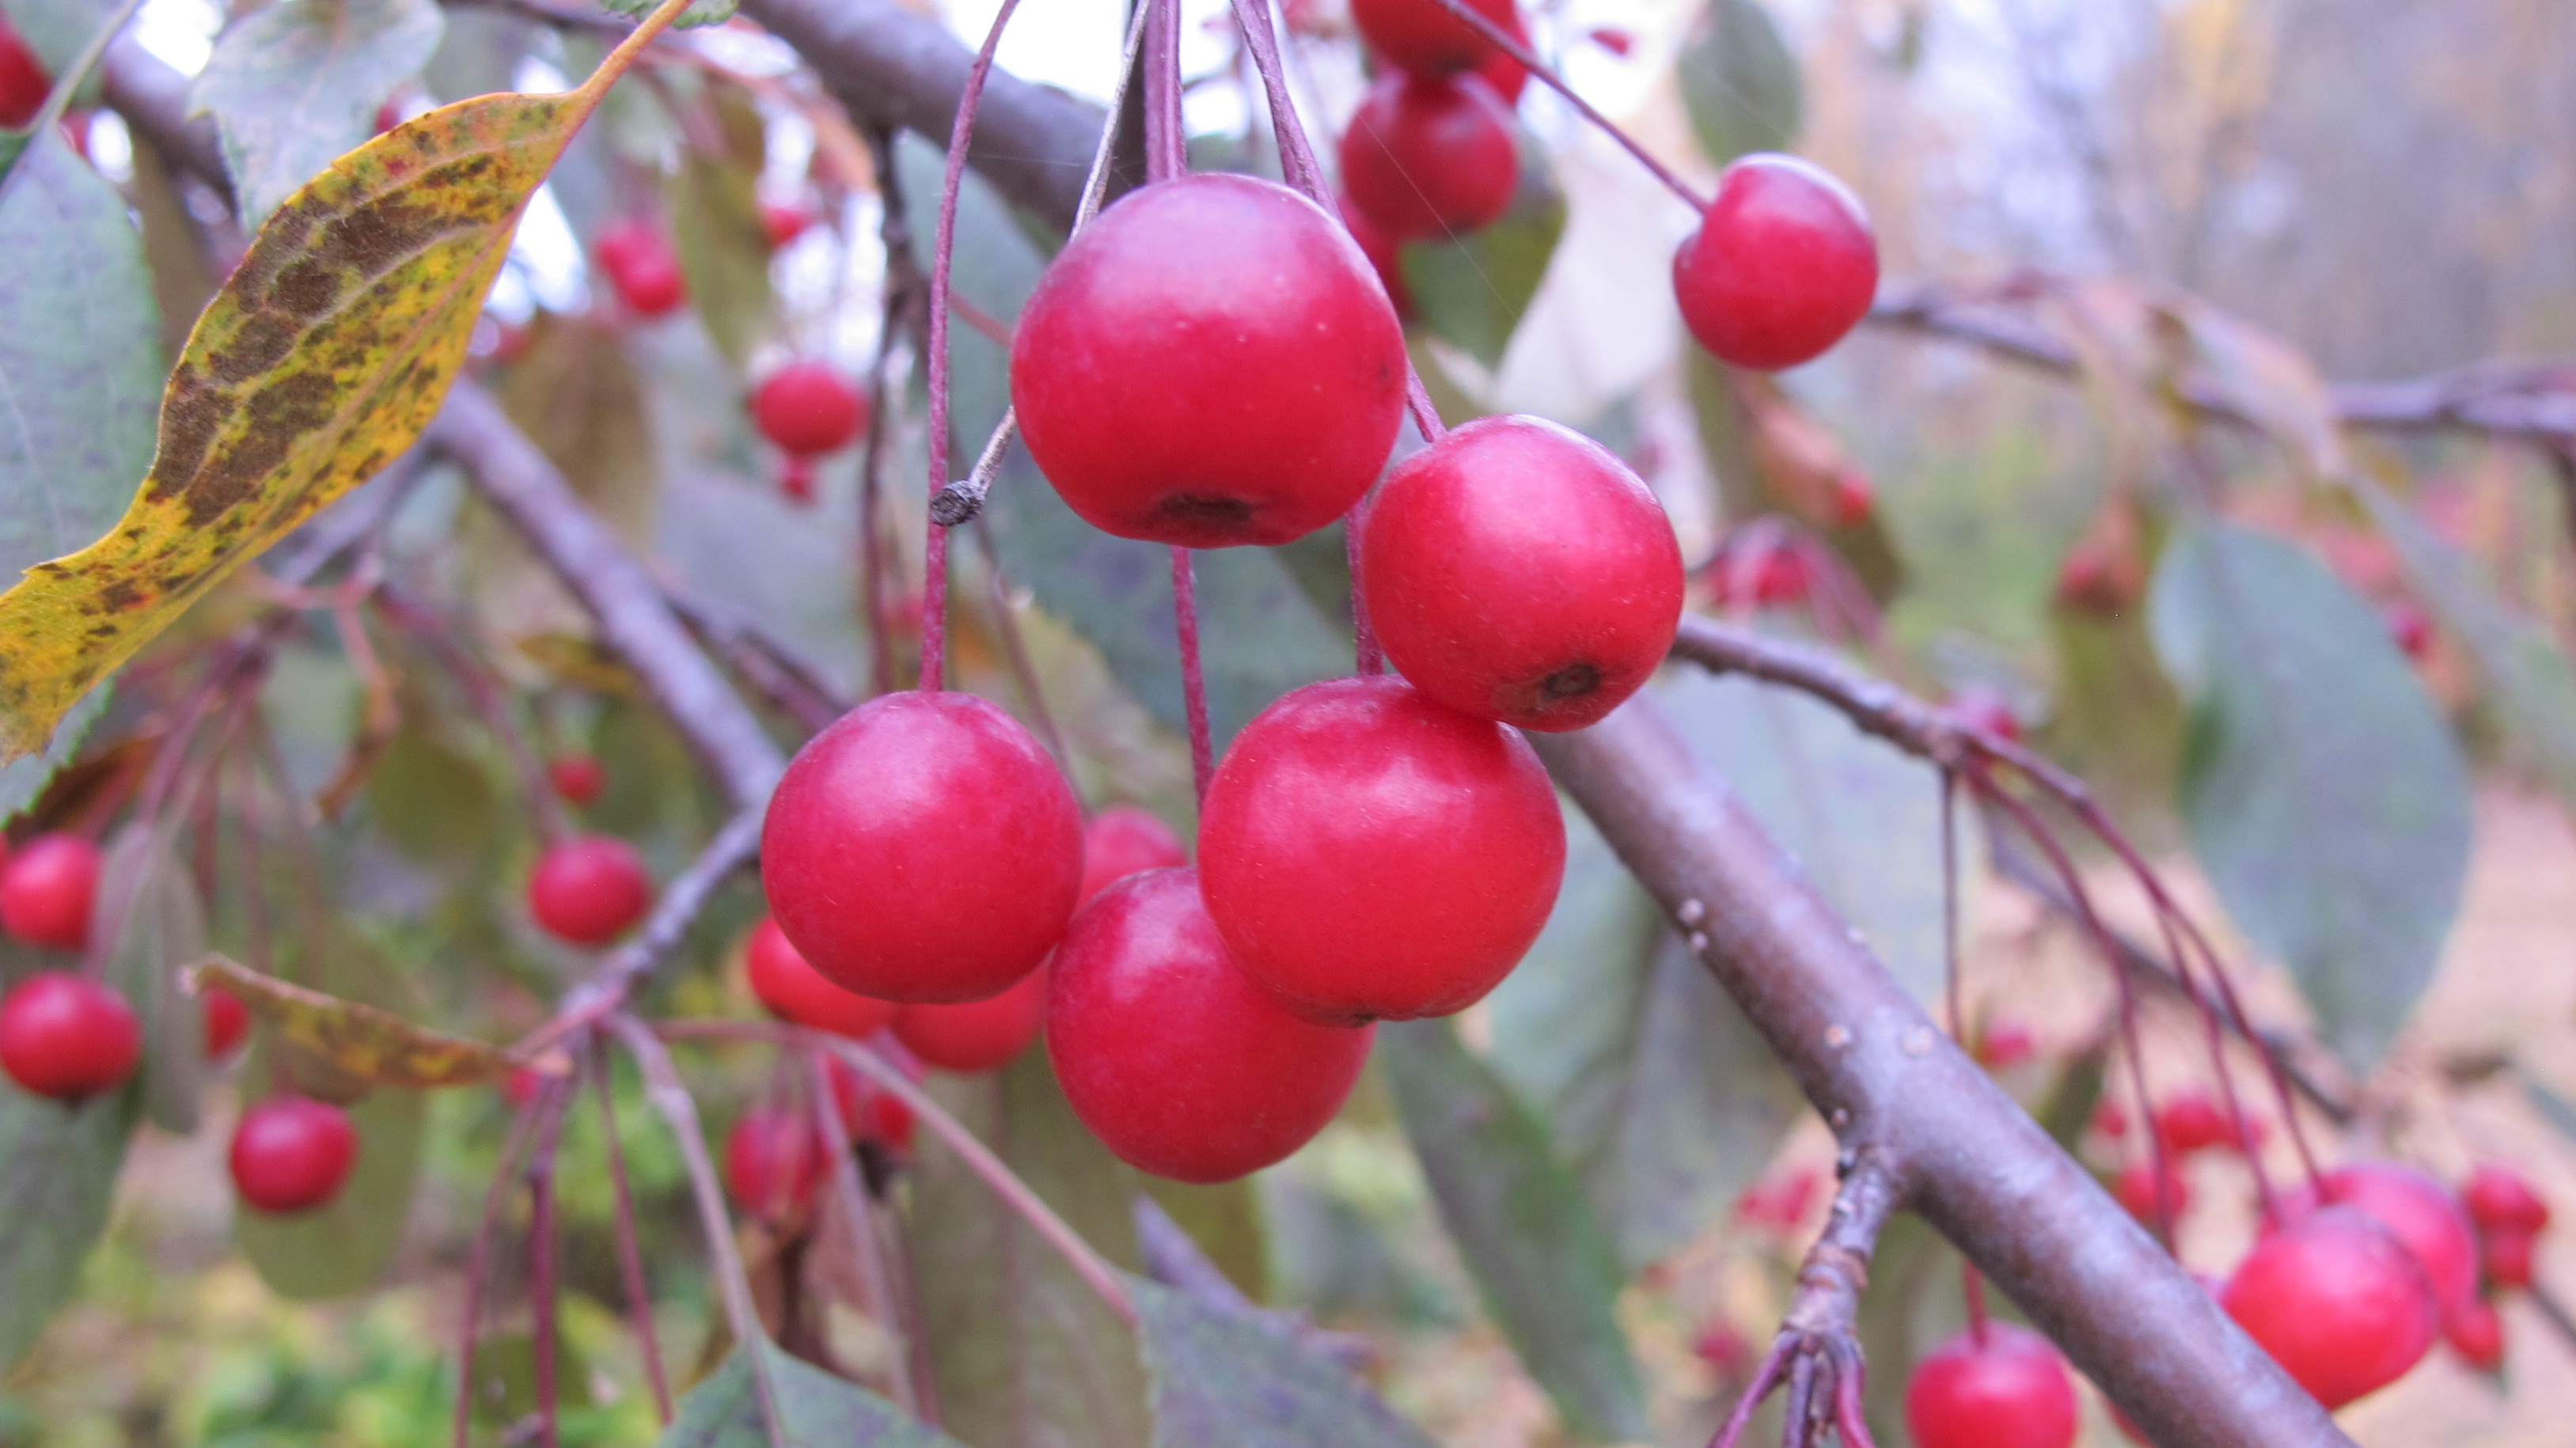 Red, red berries in a garden in autumn in the upper midwest. Photo by Barbara Newhall